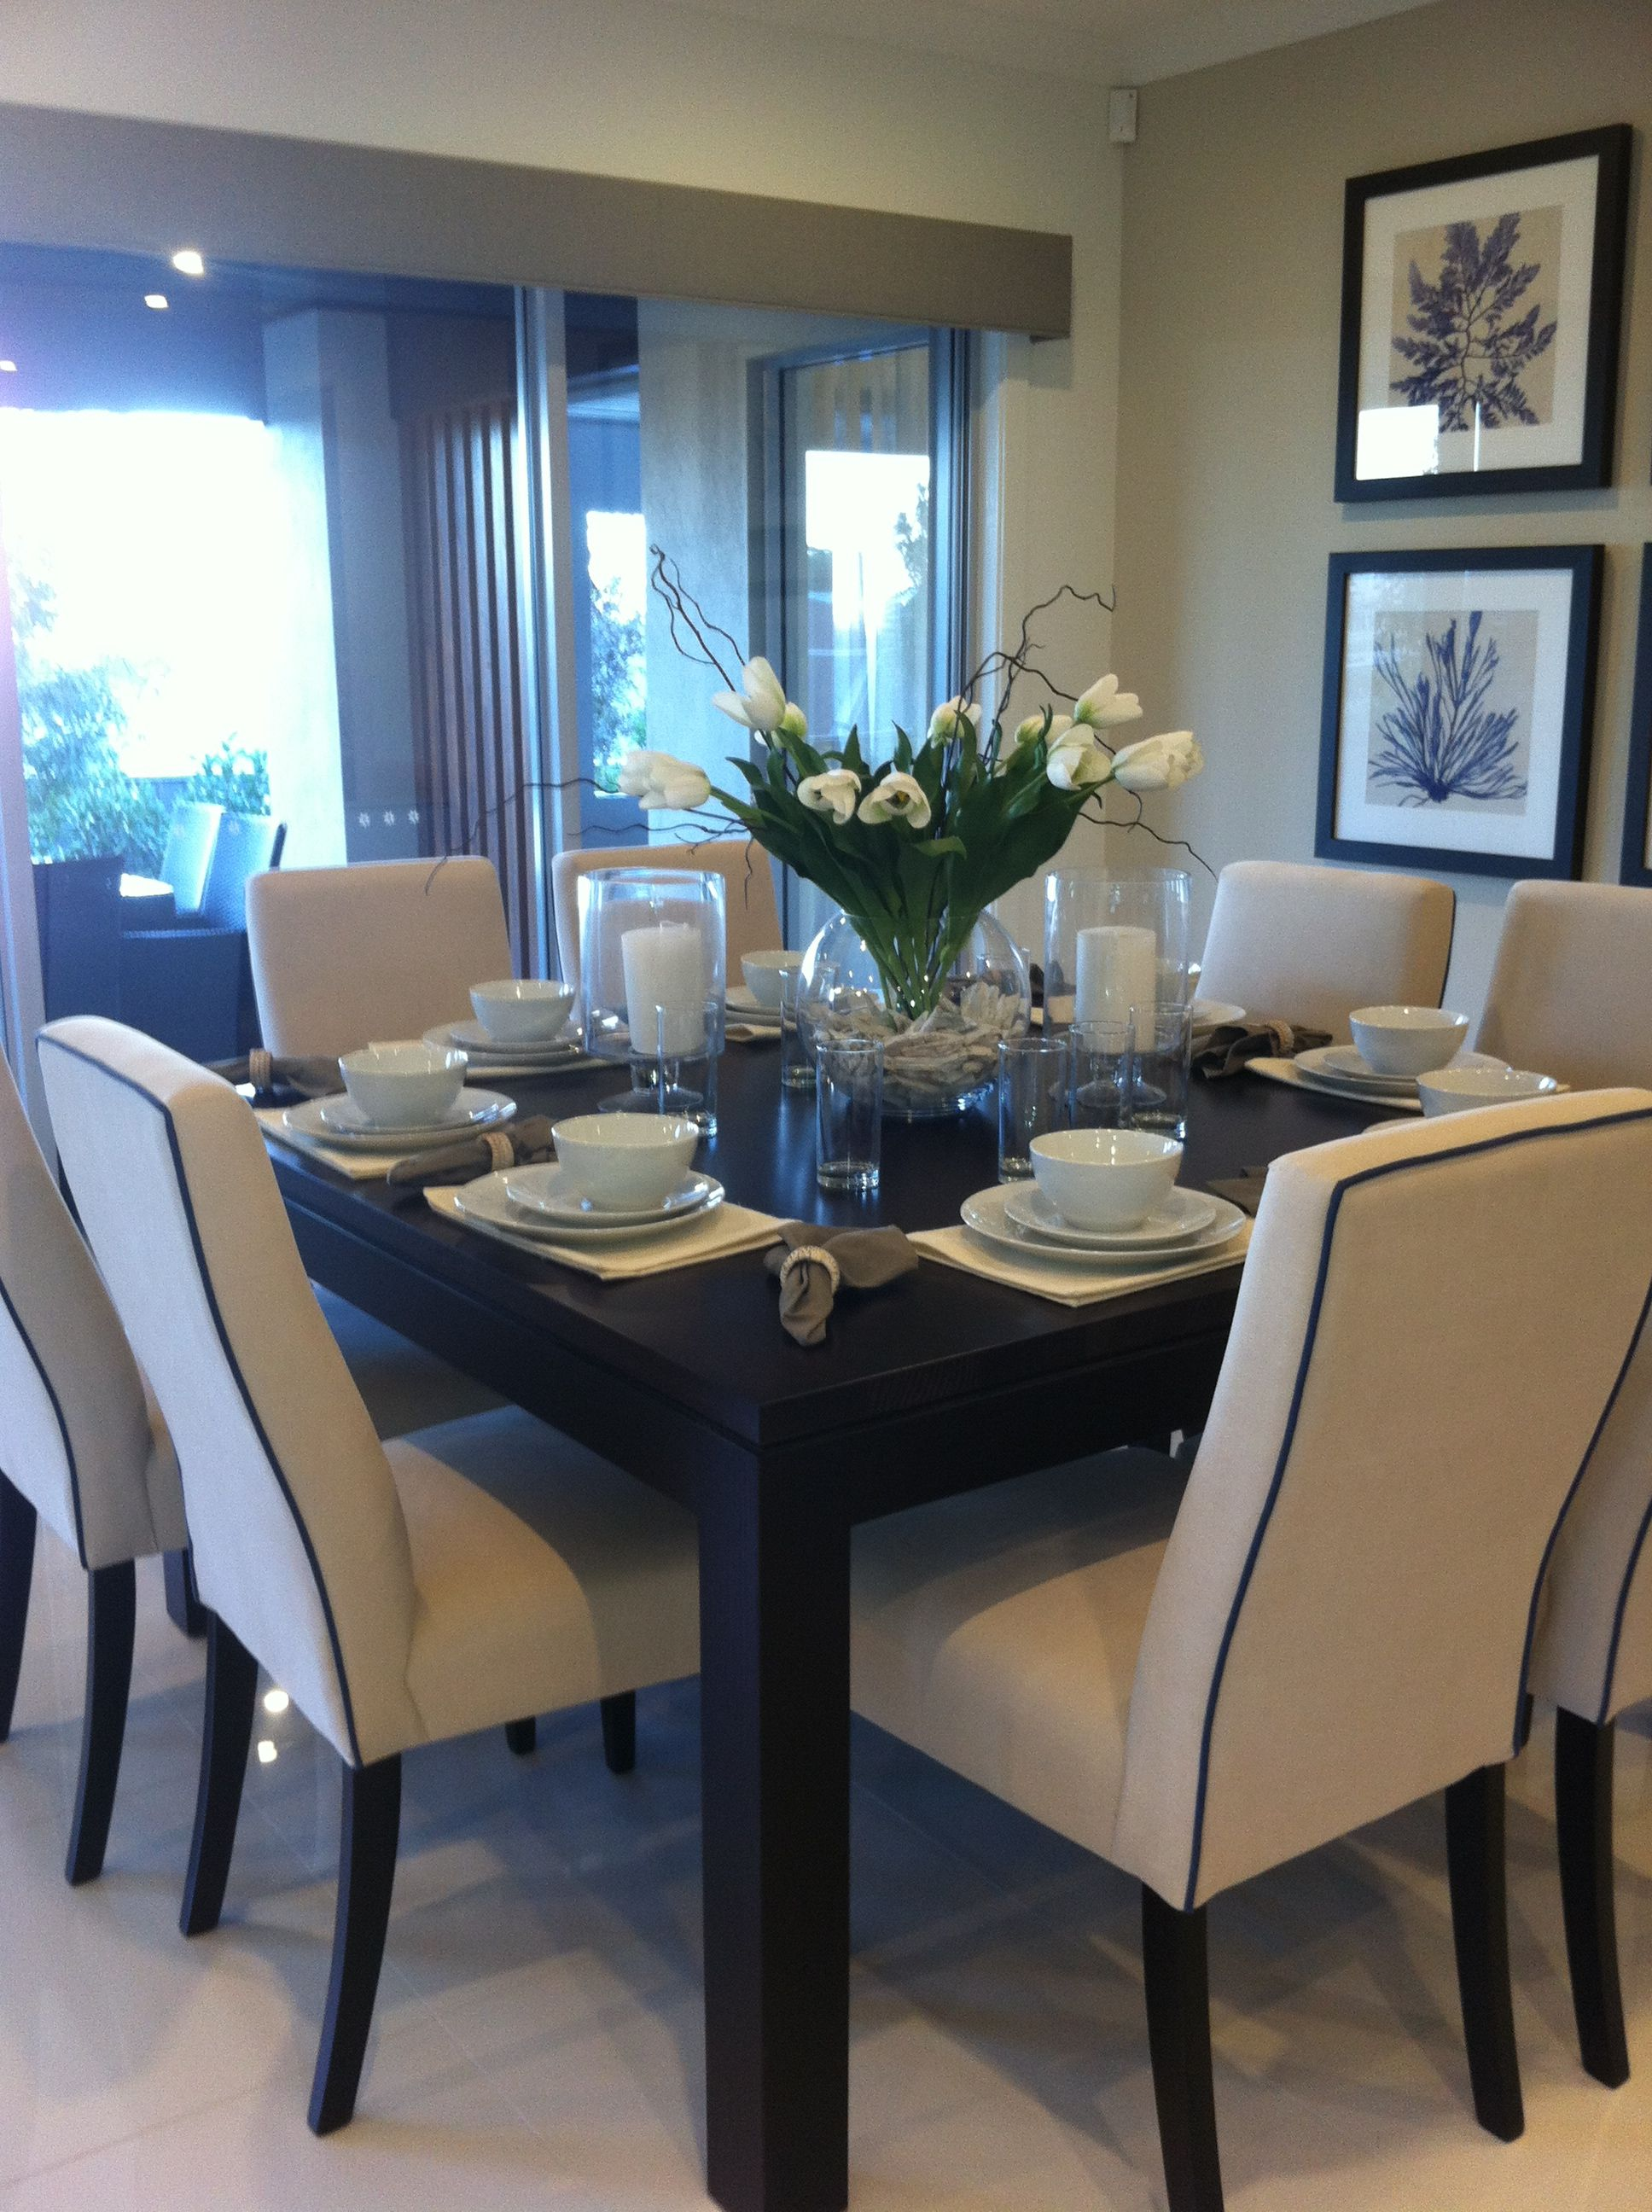 Ro round dining room sets for 8 - A Square Or Round Dining Table Lets Everyone See Each Other And Participate In The Conversation Better Than A Rectangle Maybe In My Next Life